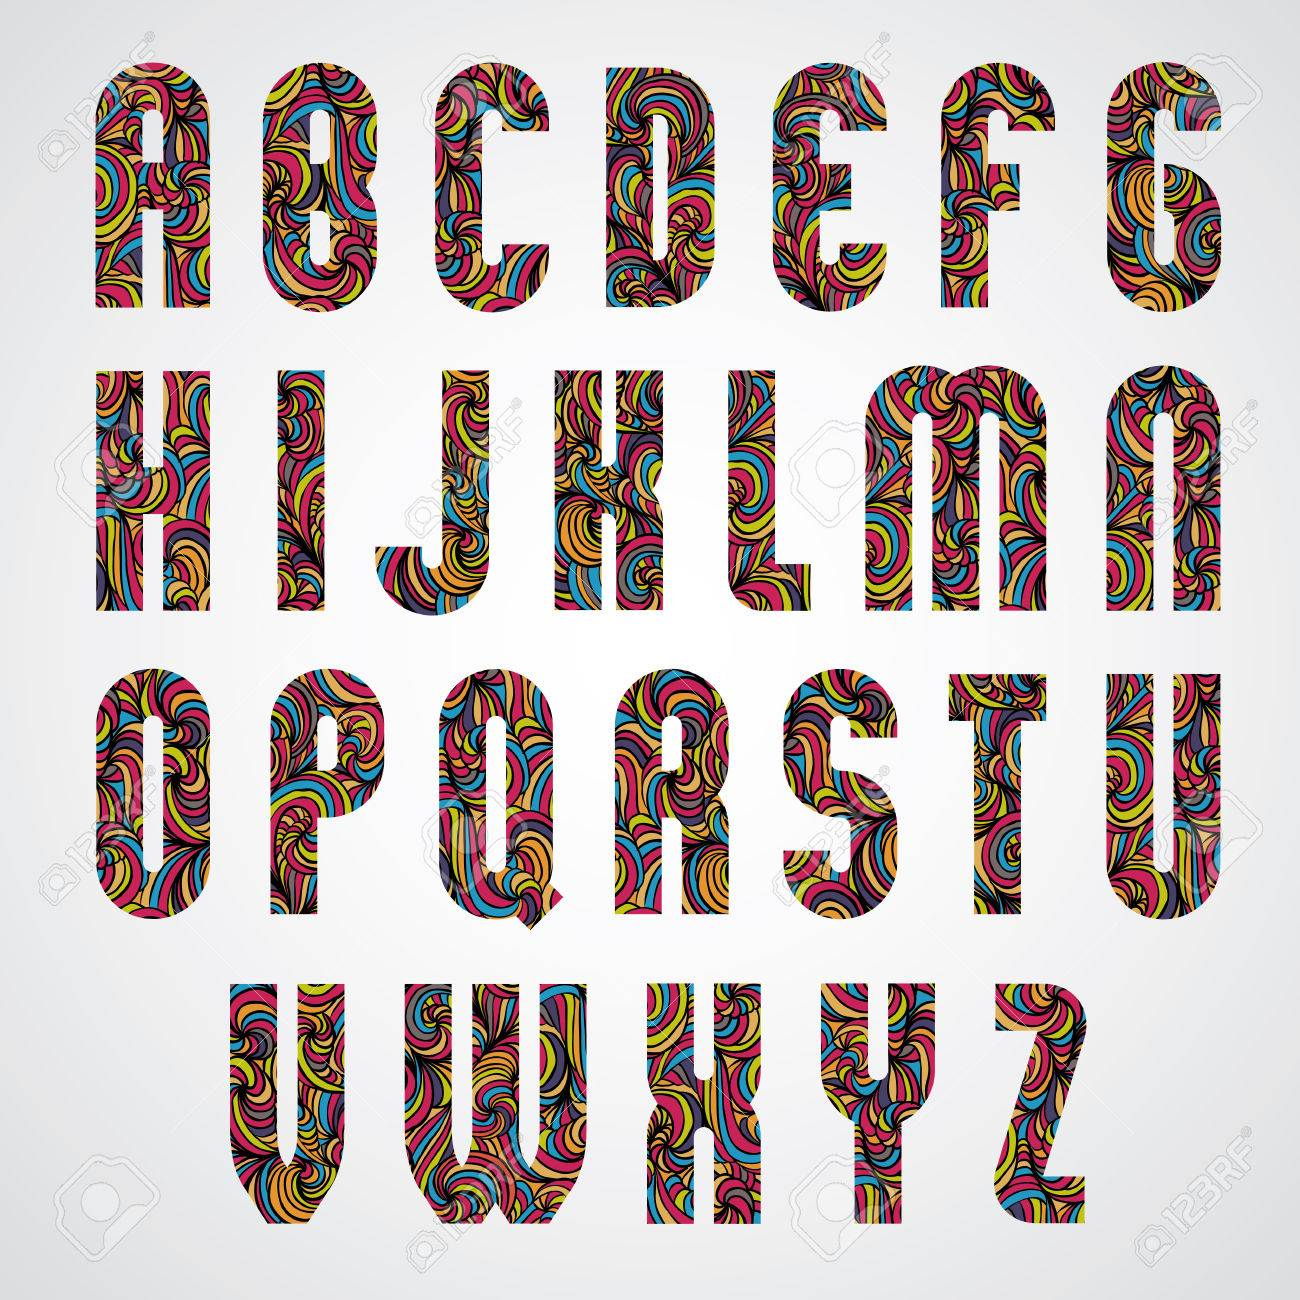 Trendy Bold Condensed Alphabet Letters Design Decorated With